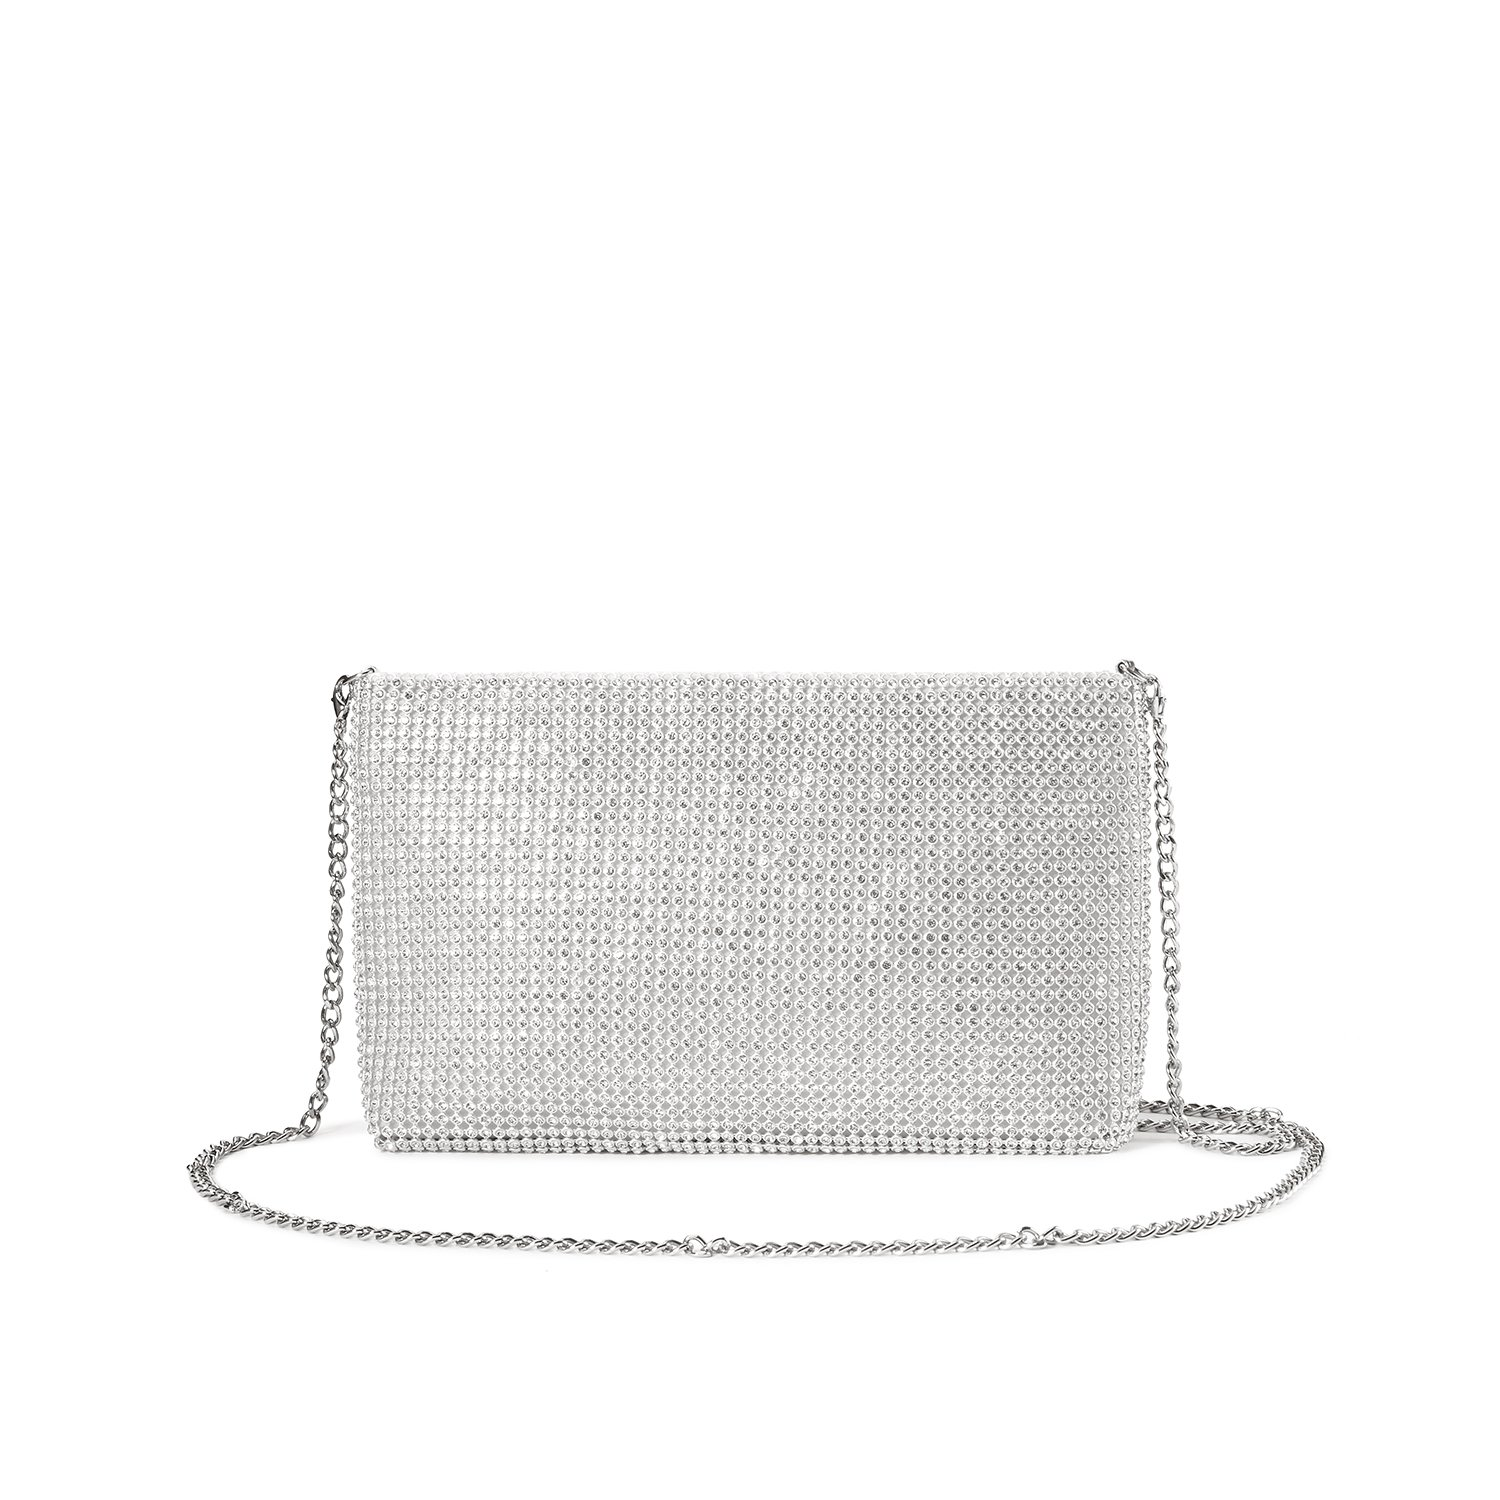 LOVEVOOK Evening Bag Crossbody Bag Clutch Purse for Party Prom with Sparkly Rhinestones Silver